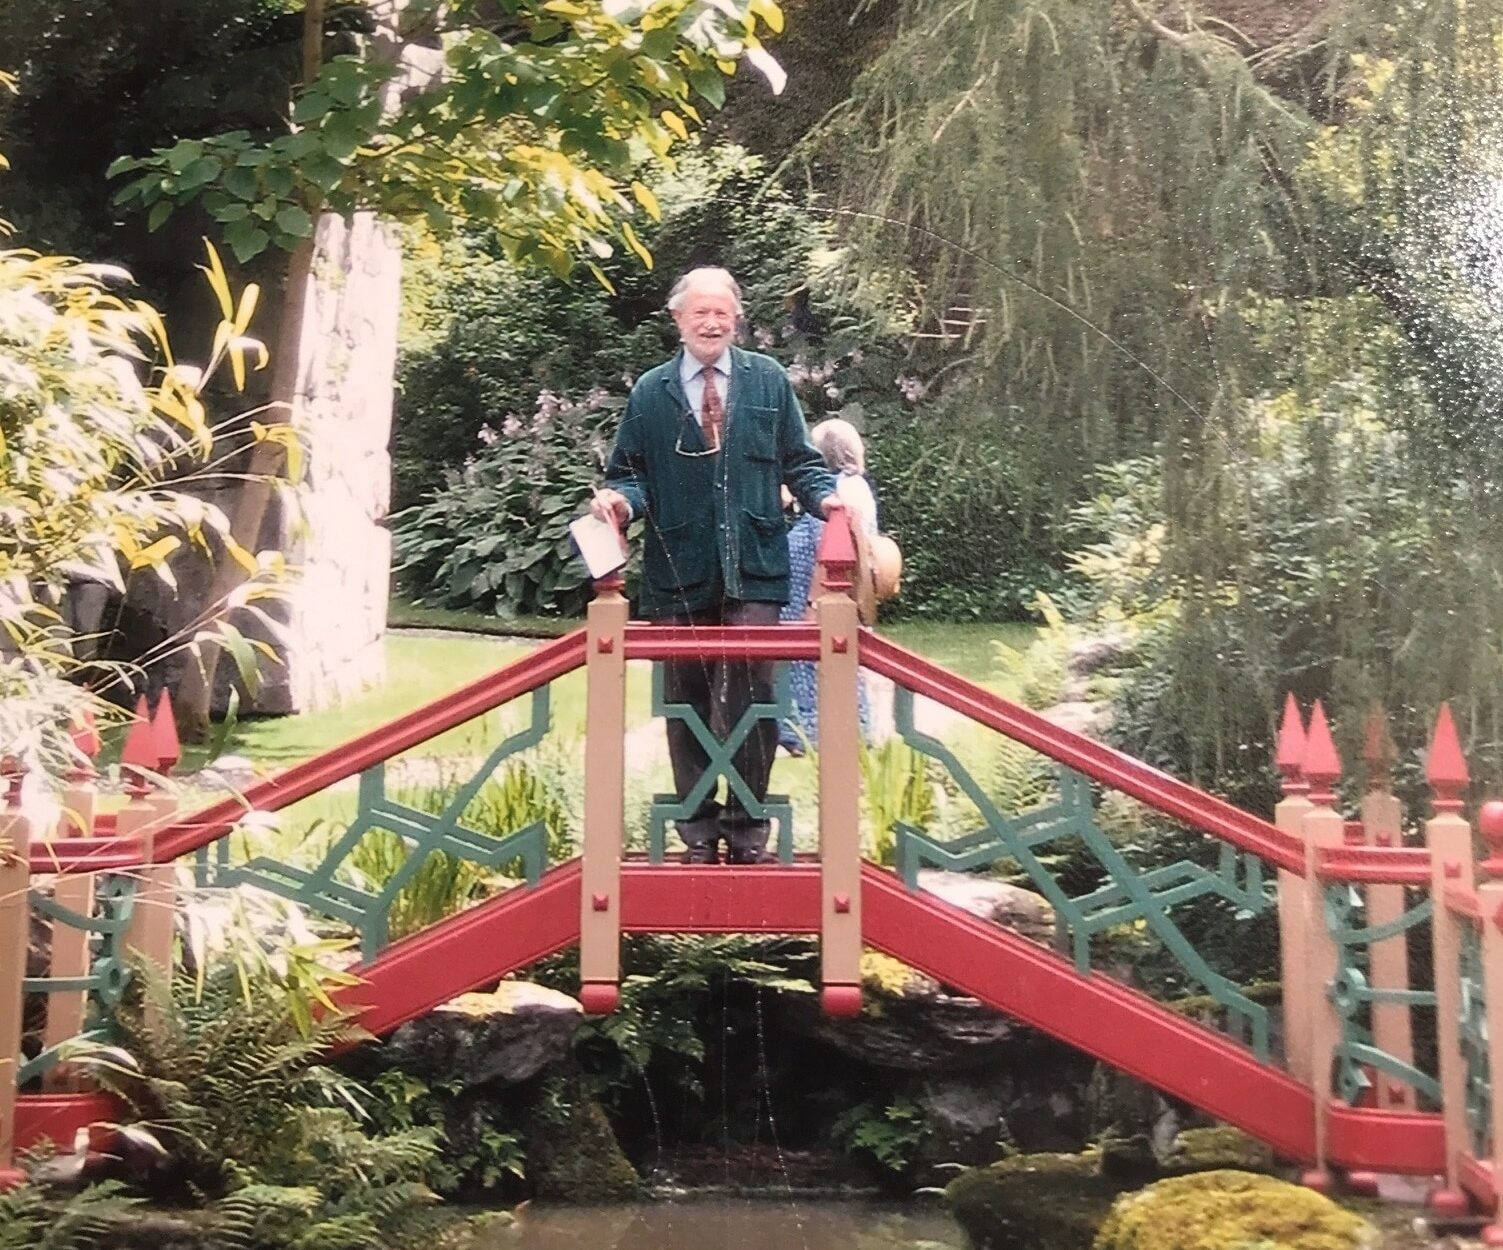 Christopher Thacker standing on the Chinese bridge at Biddulph Grange